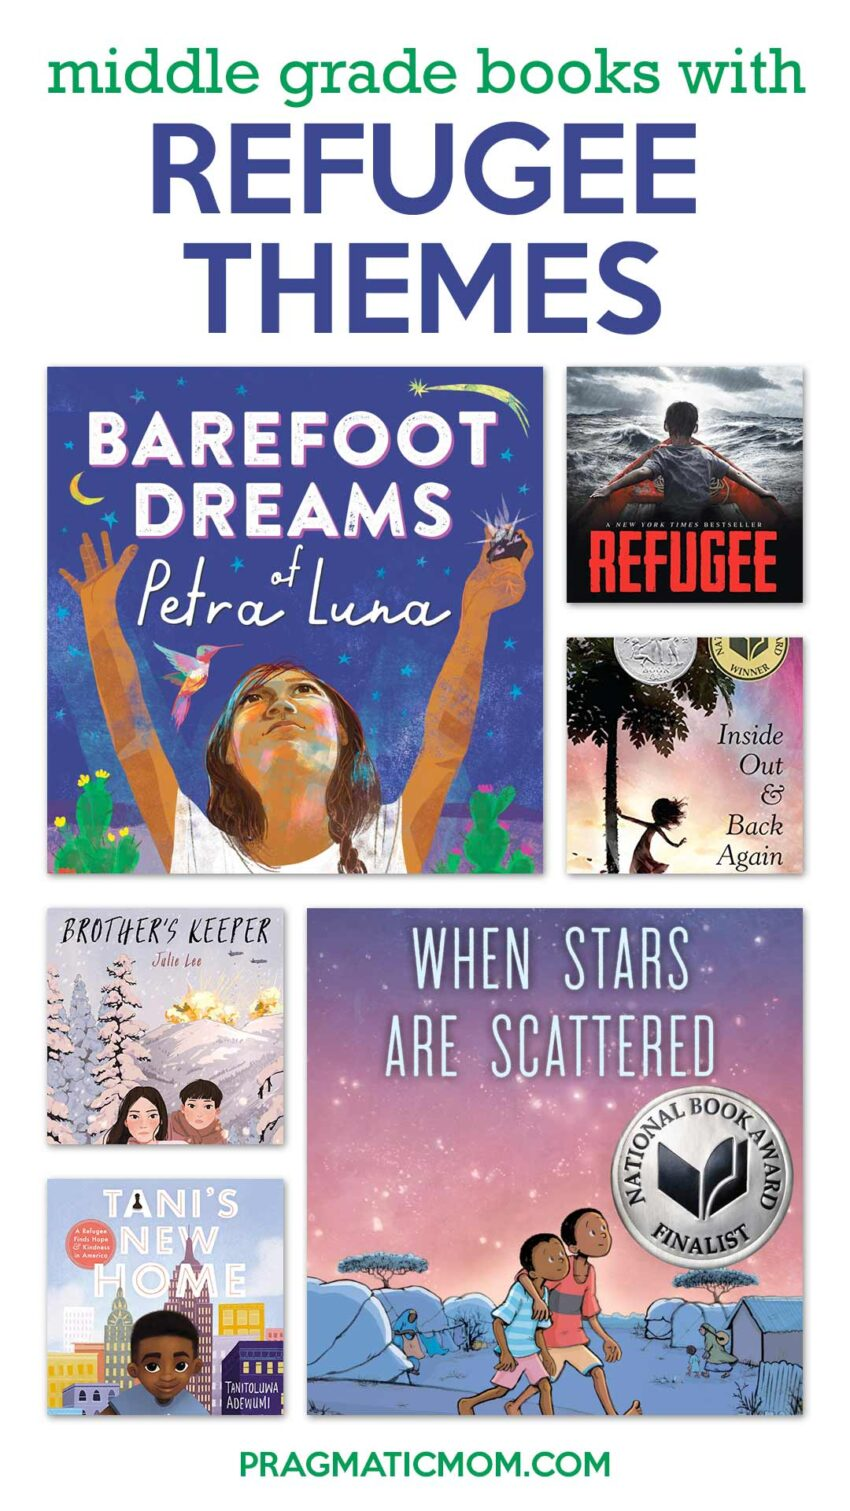 Middle Grade Books with Refugee Themes